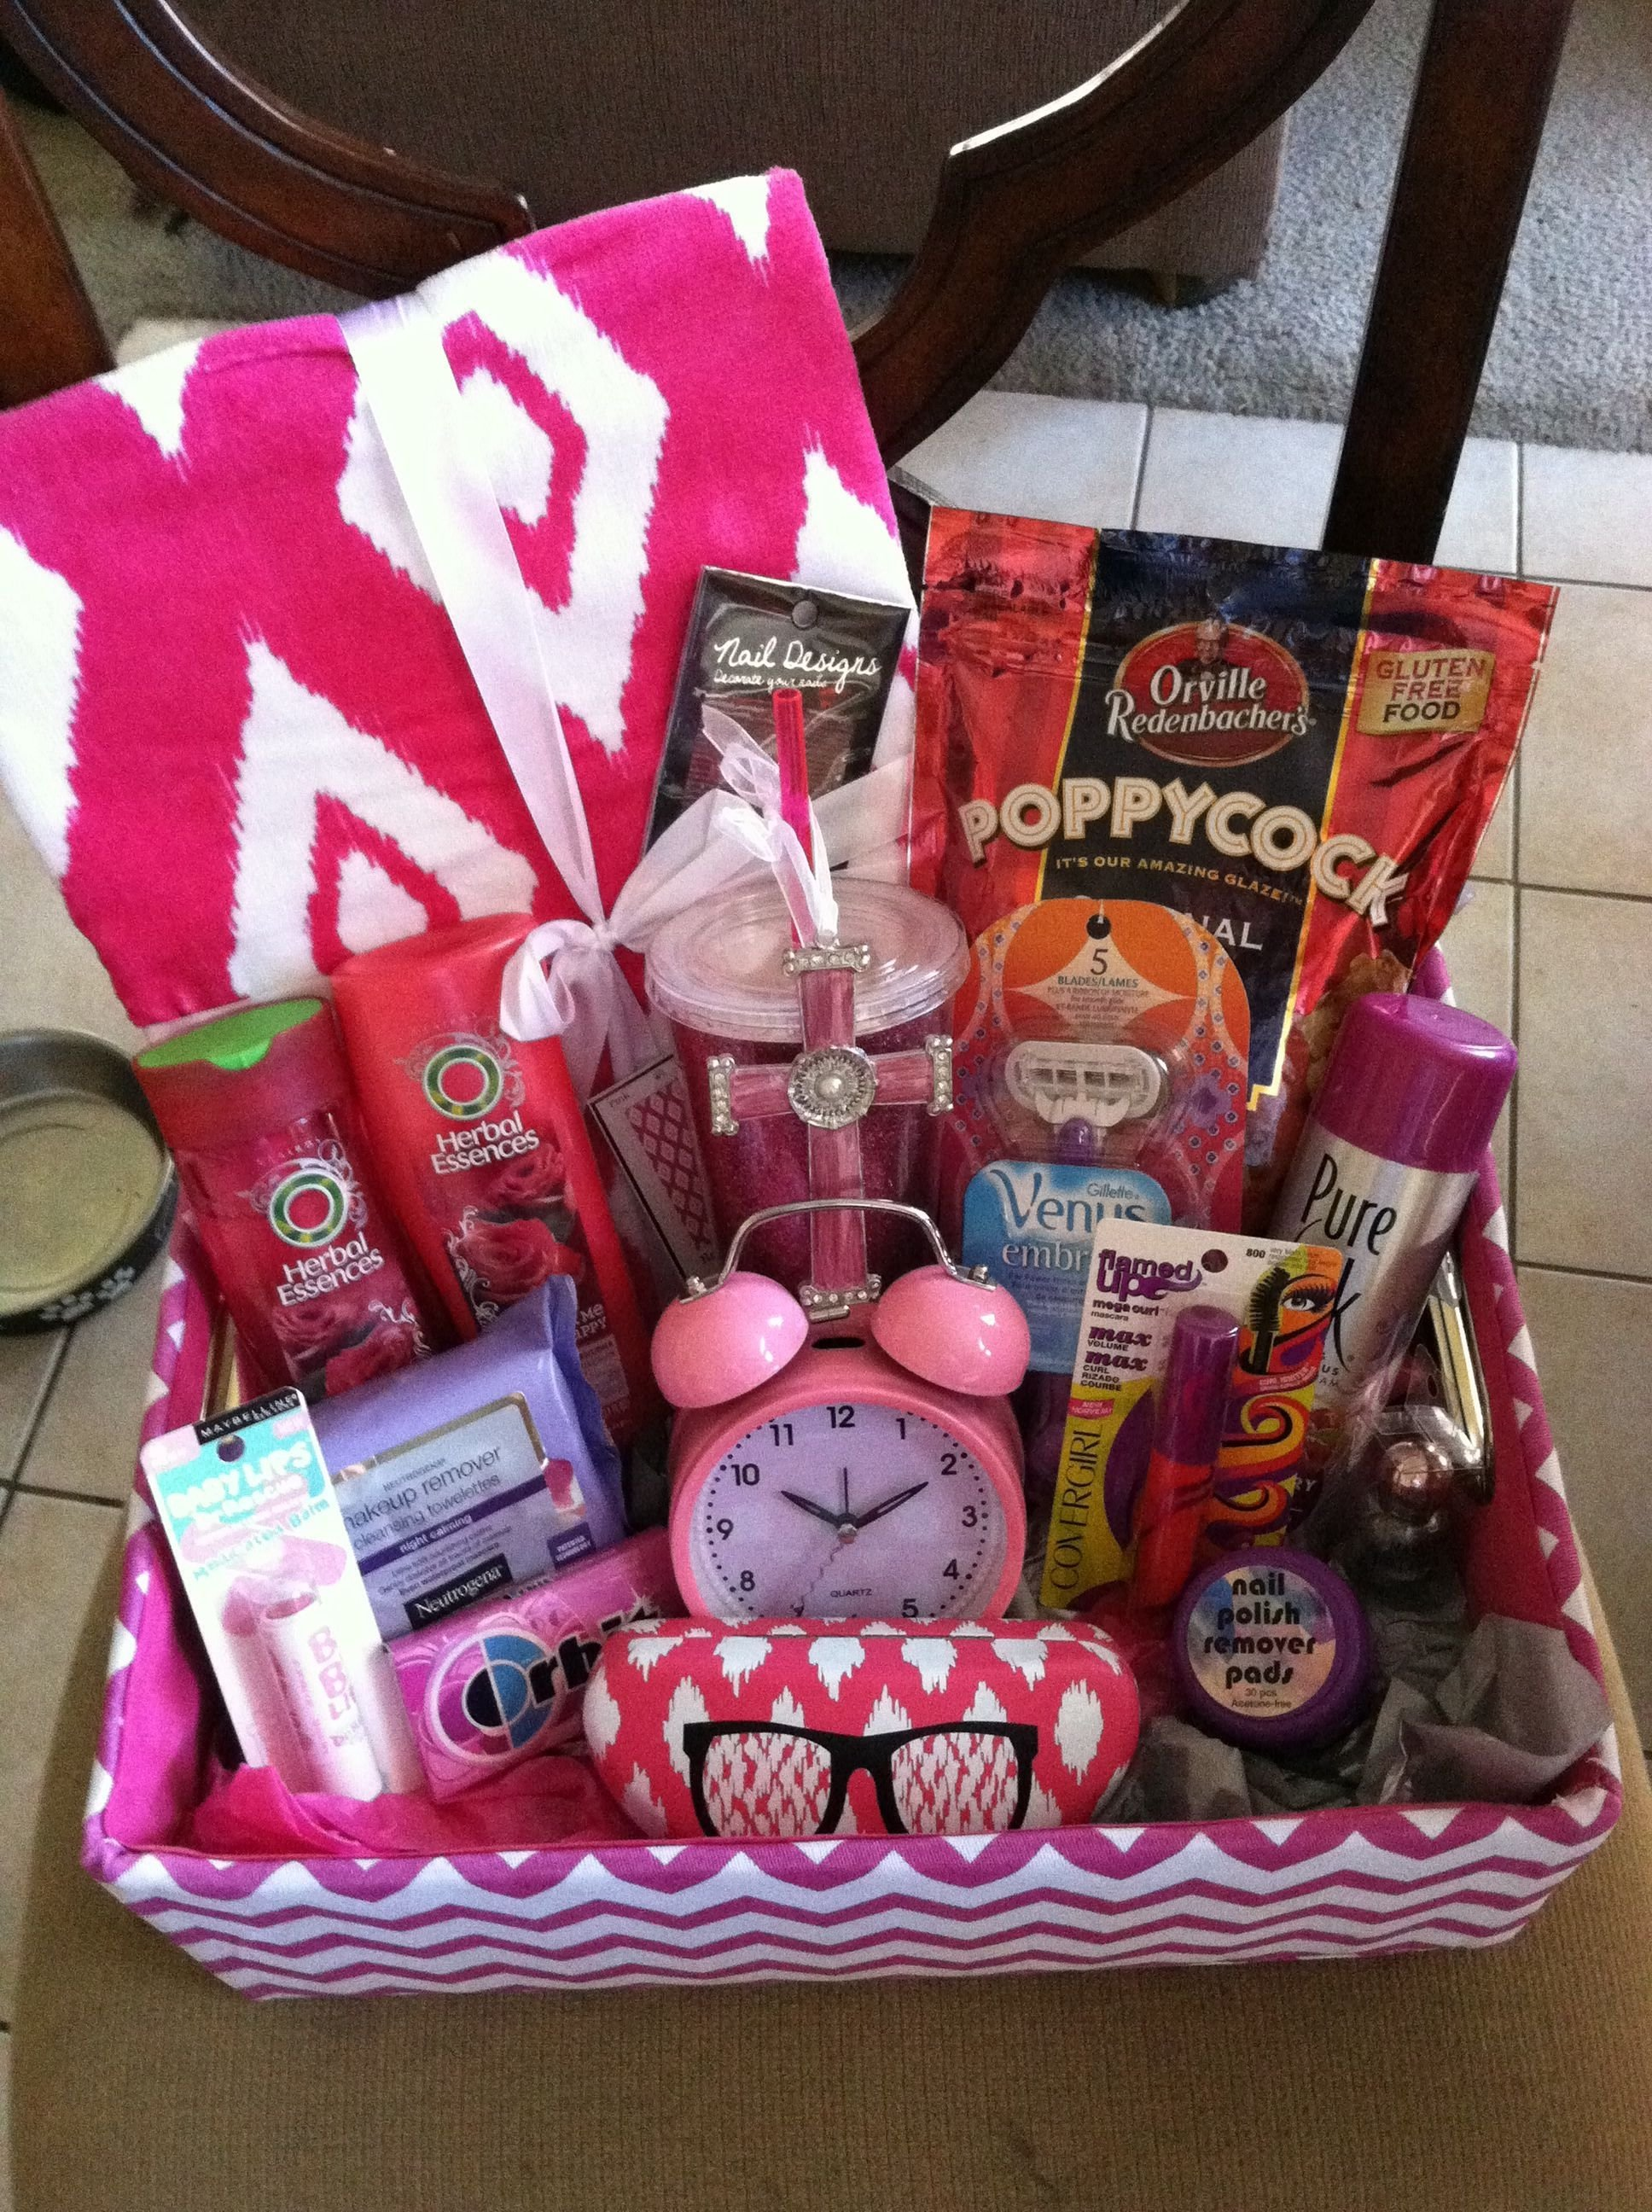 10 Famous Gift Basket Ideas For Women 30 Christmas Baskets All Your Loved Ones